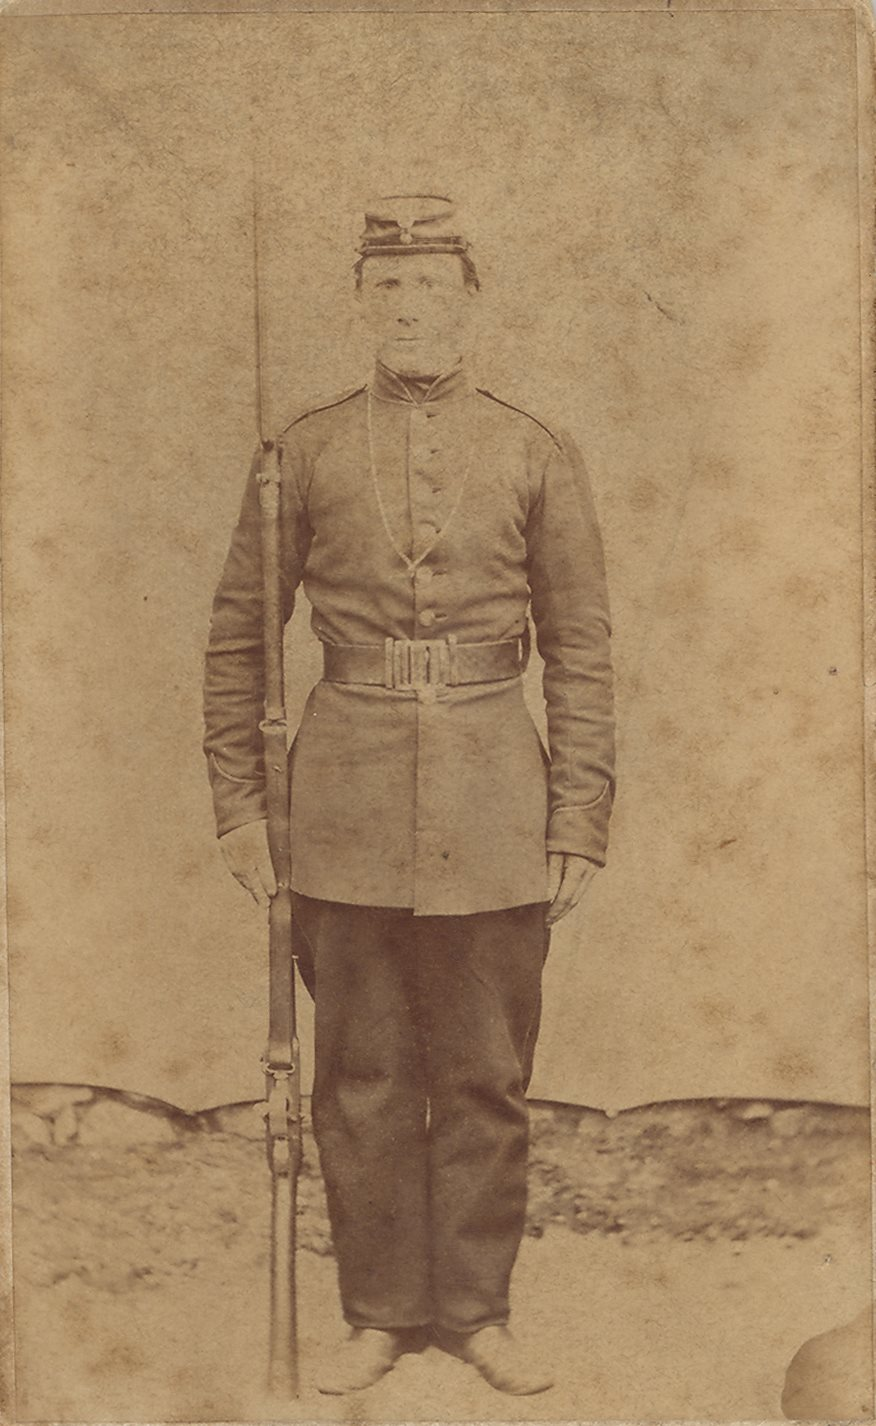 ole-e-brudvik-1847-1912-uniform.jpg